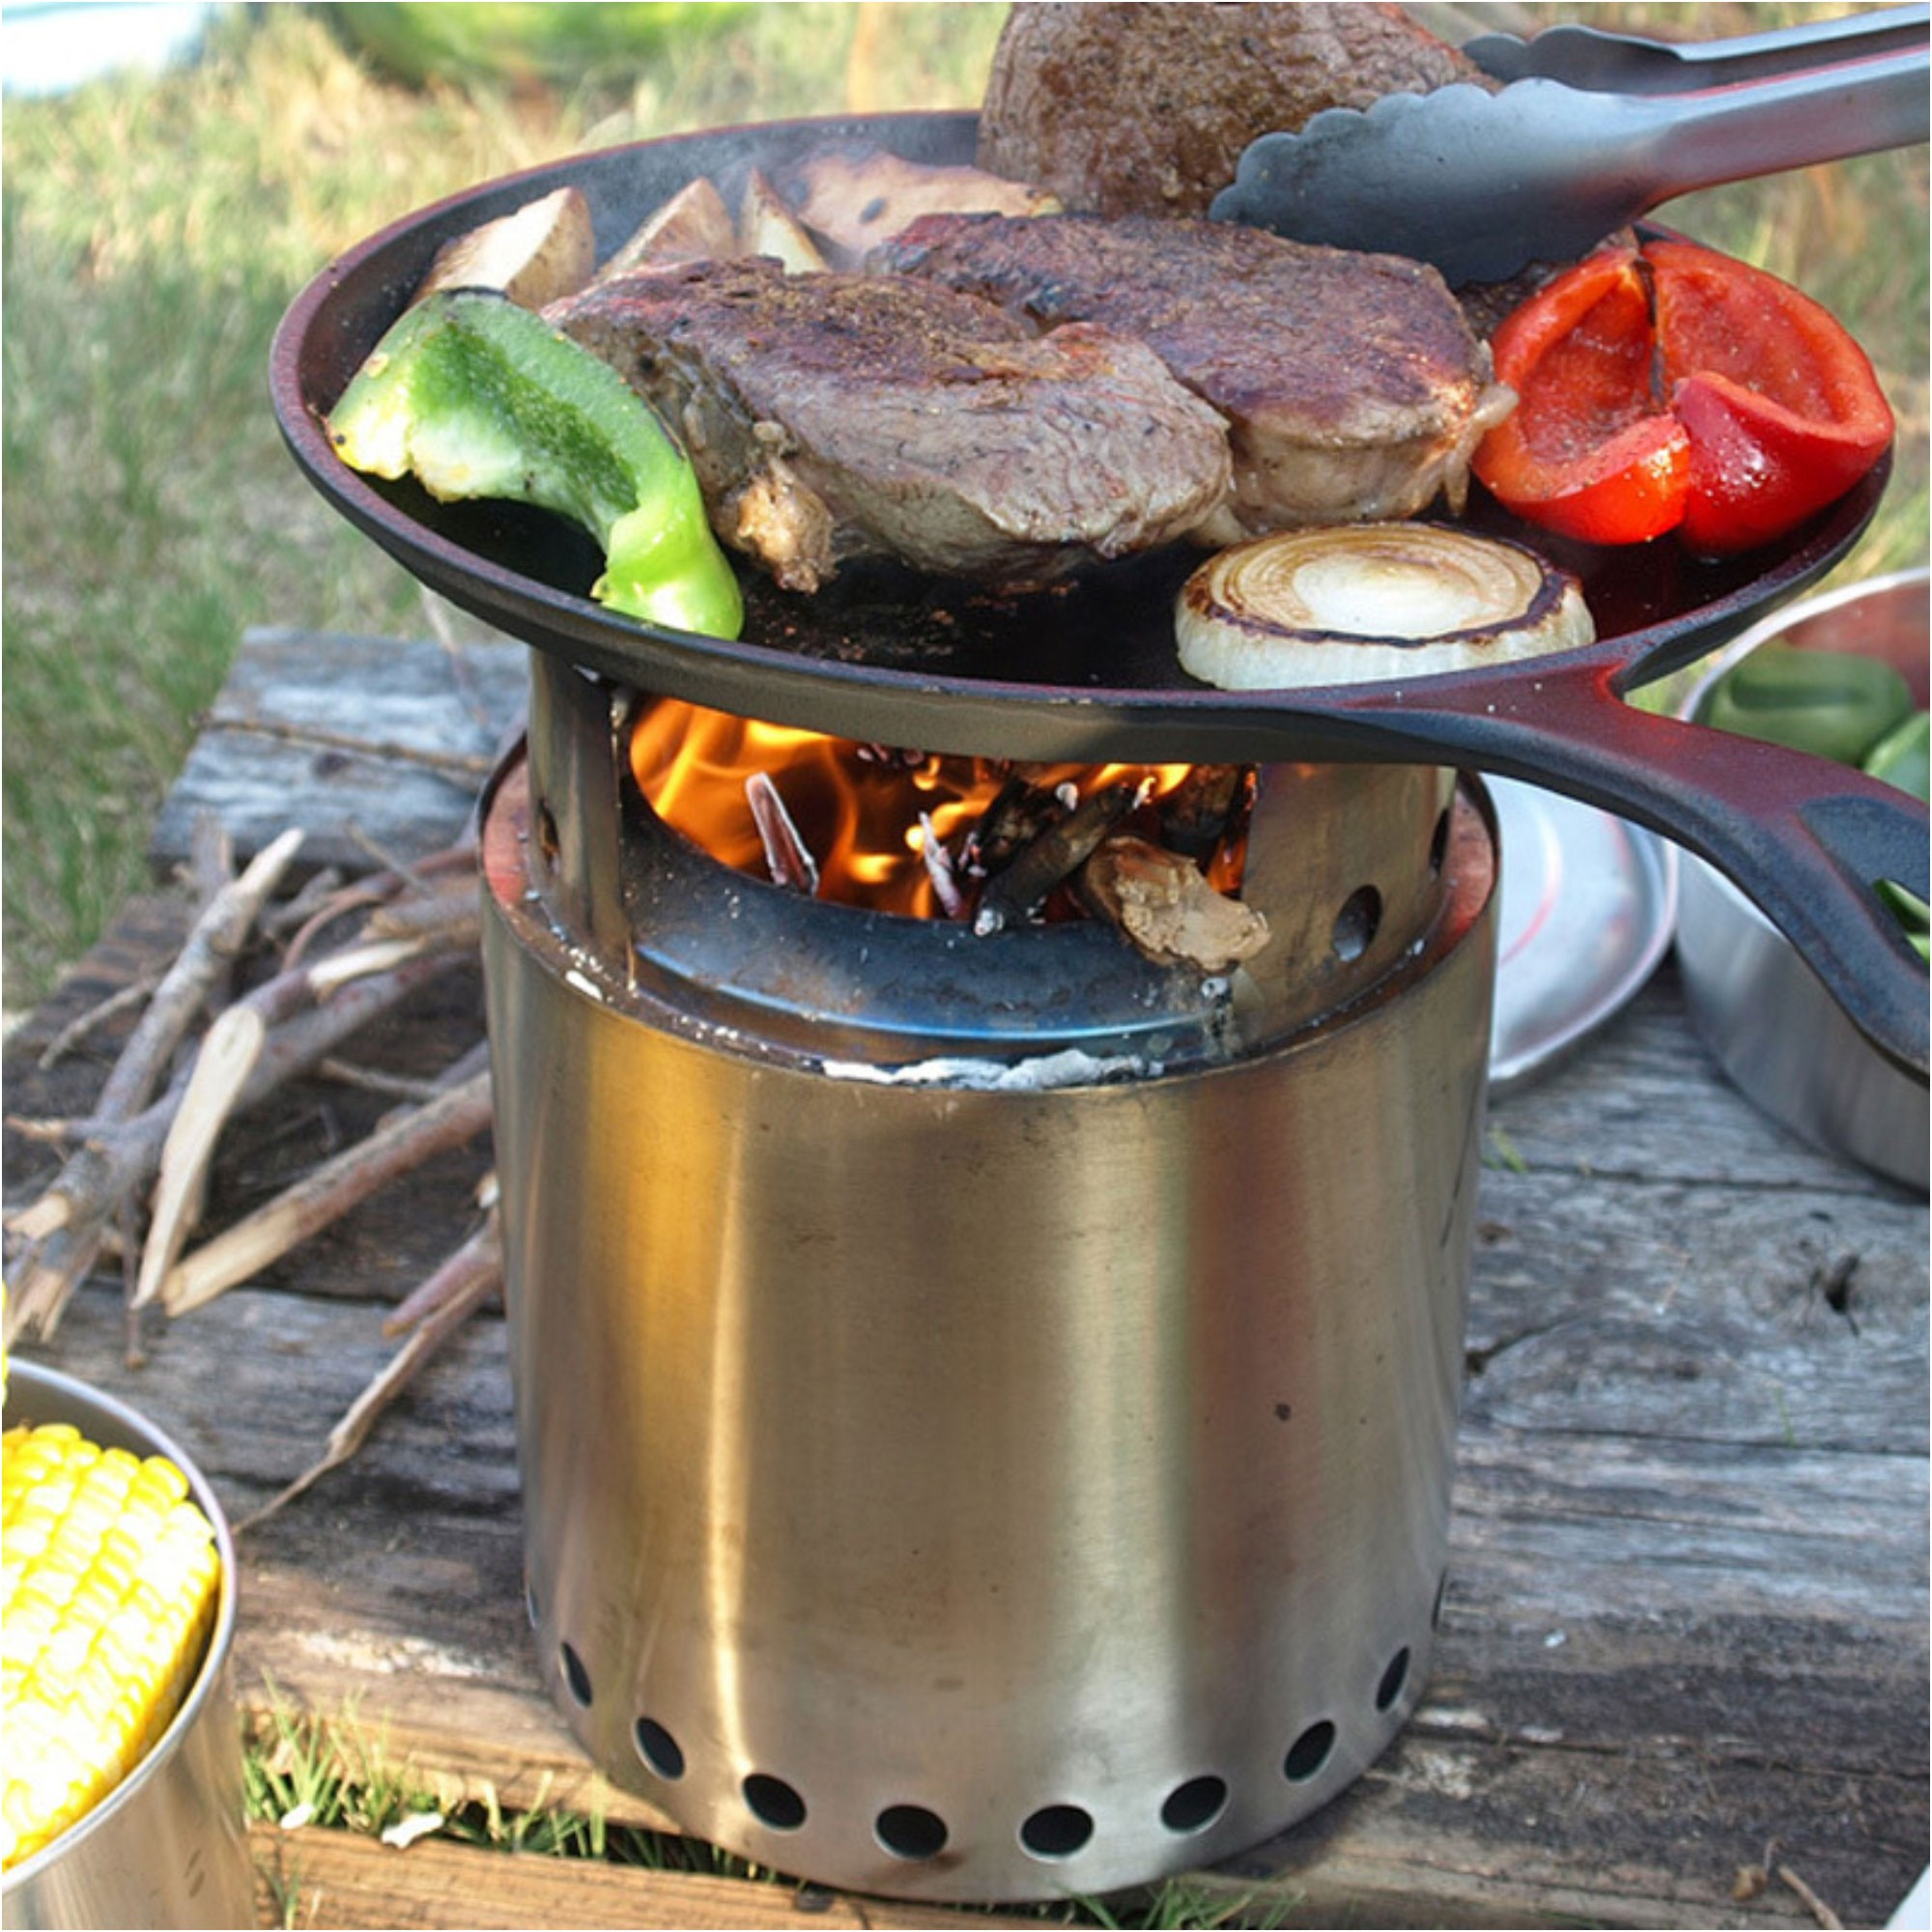 Solo Stove Campfire Stove Stainless Steel